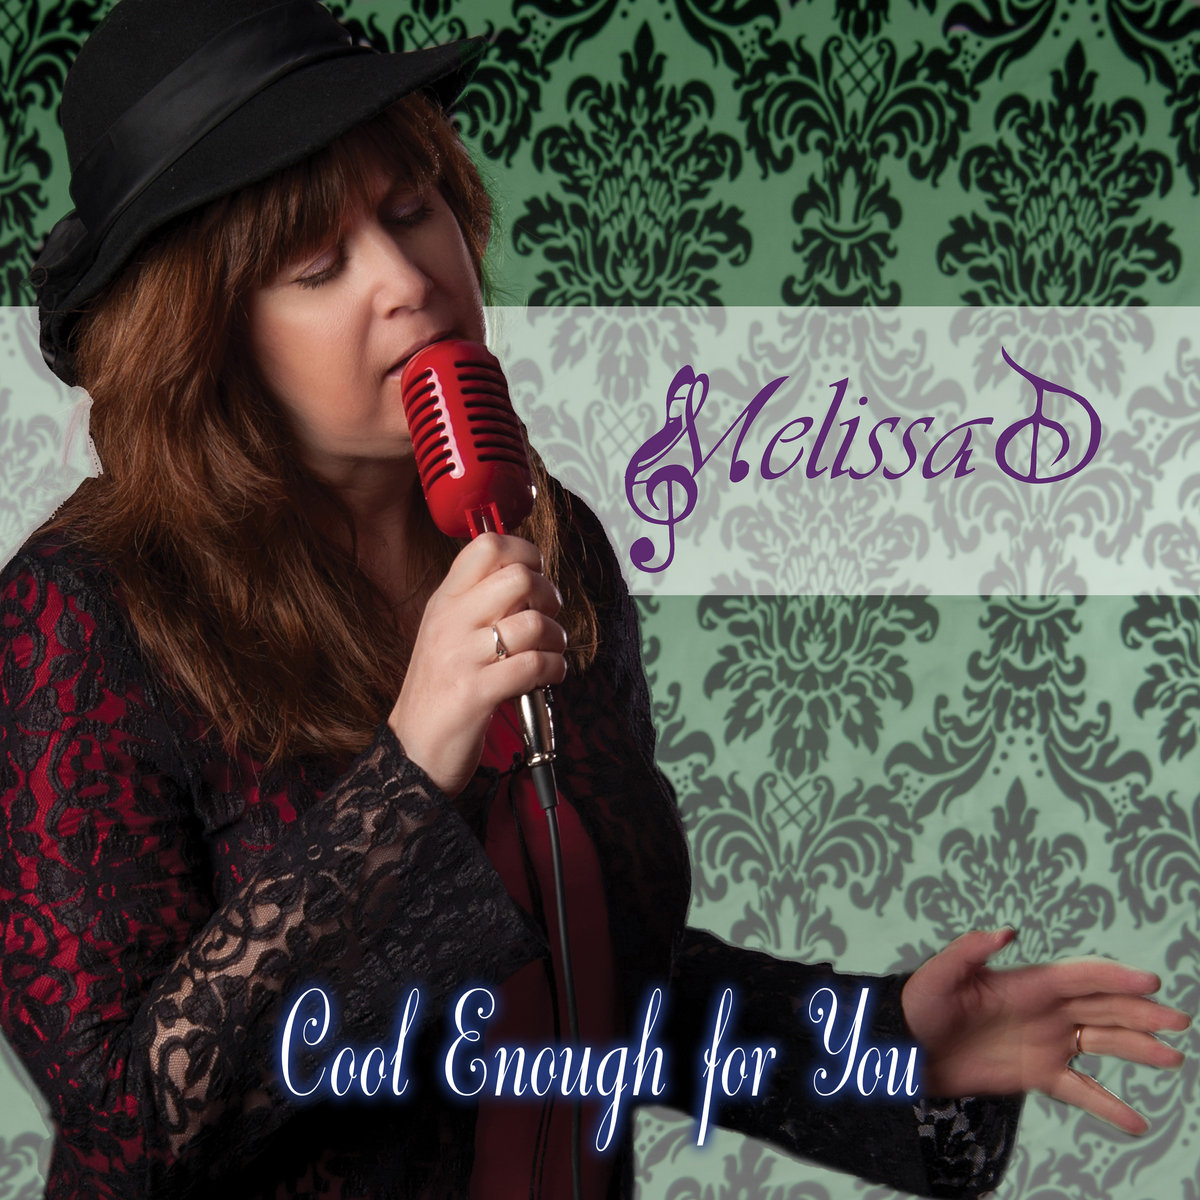 Cool Enough for You by Melissa D